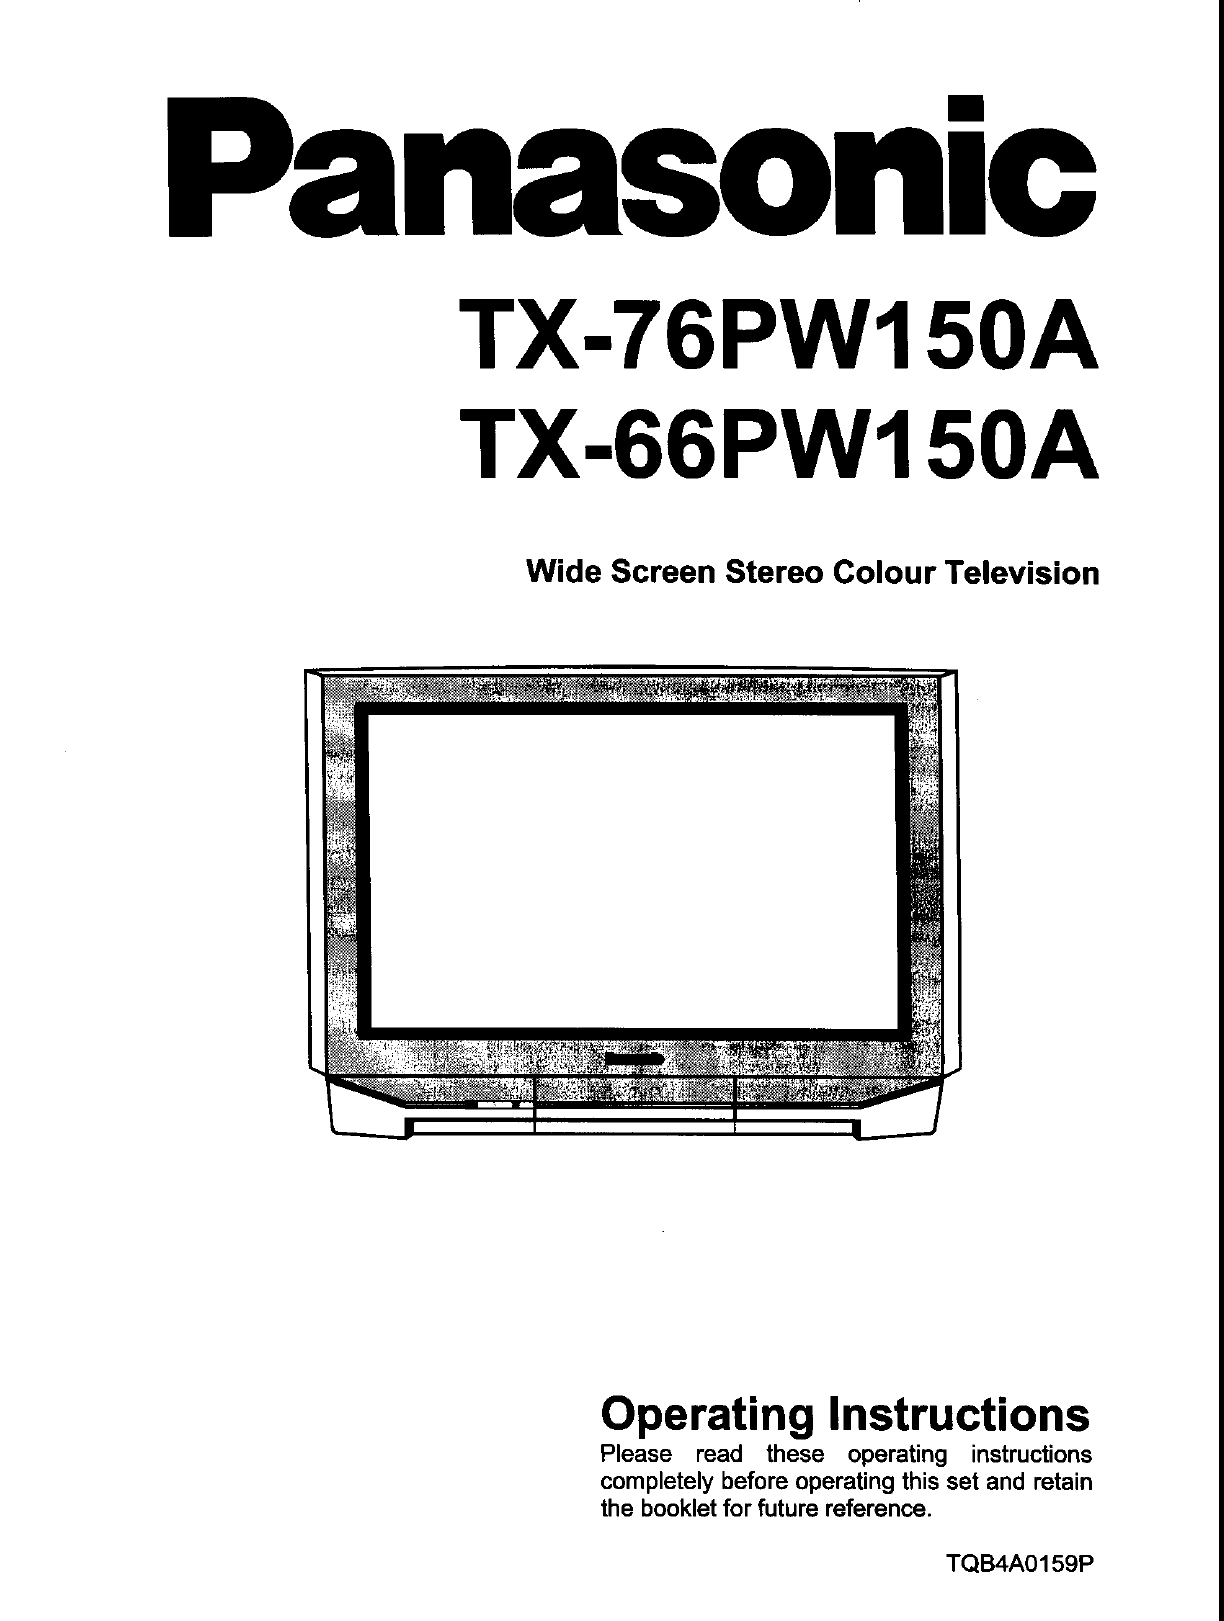 Panasonic CRT Television TX-76PW150A User Guide